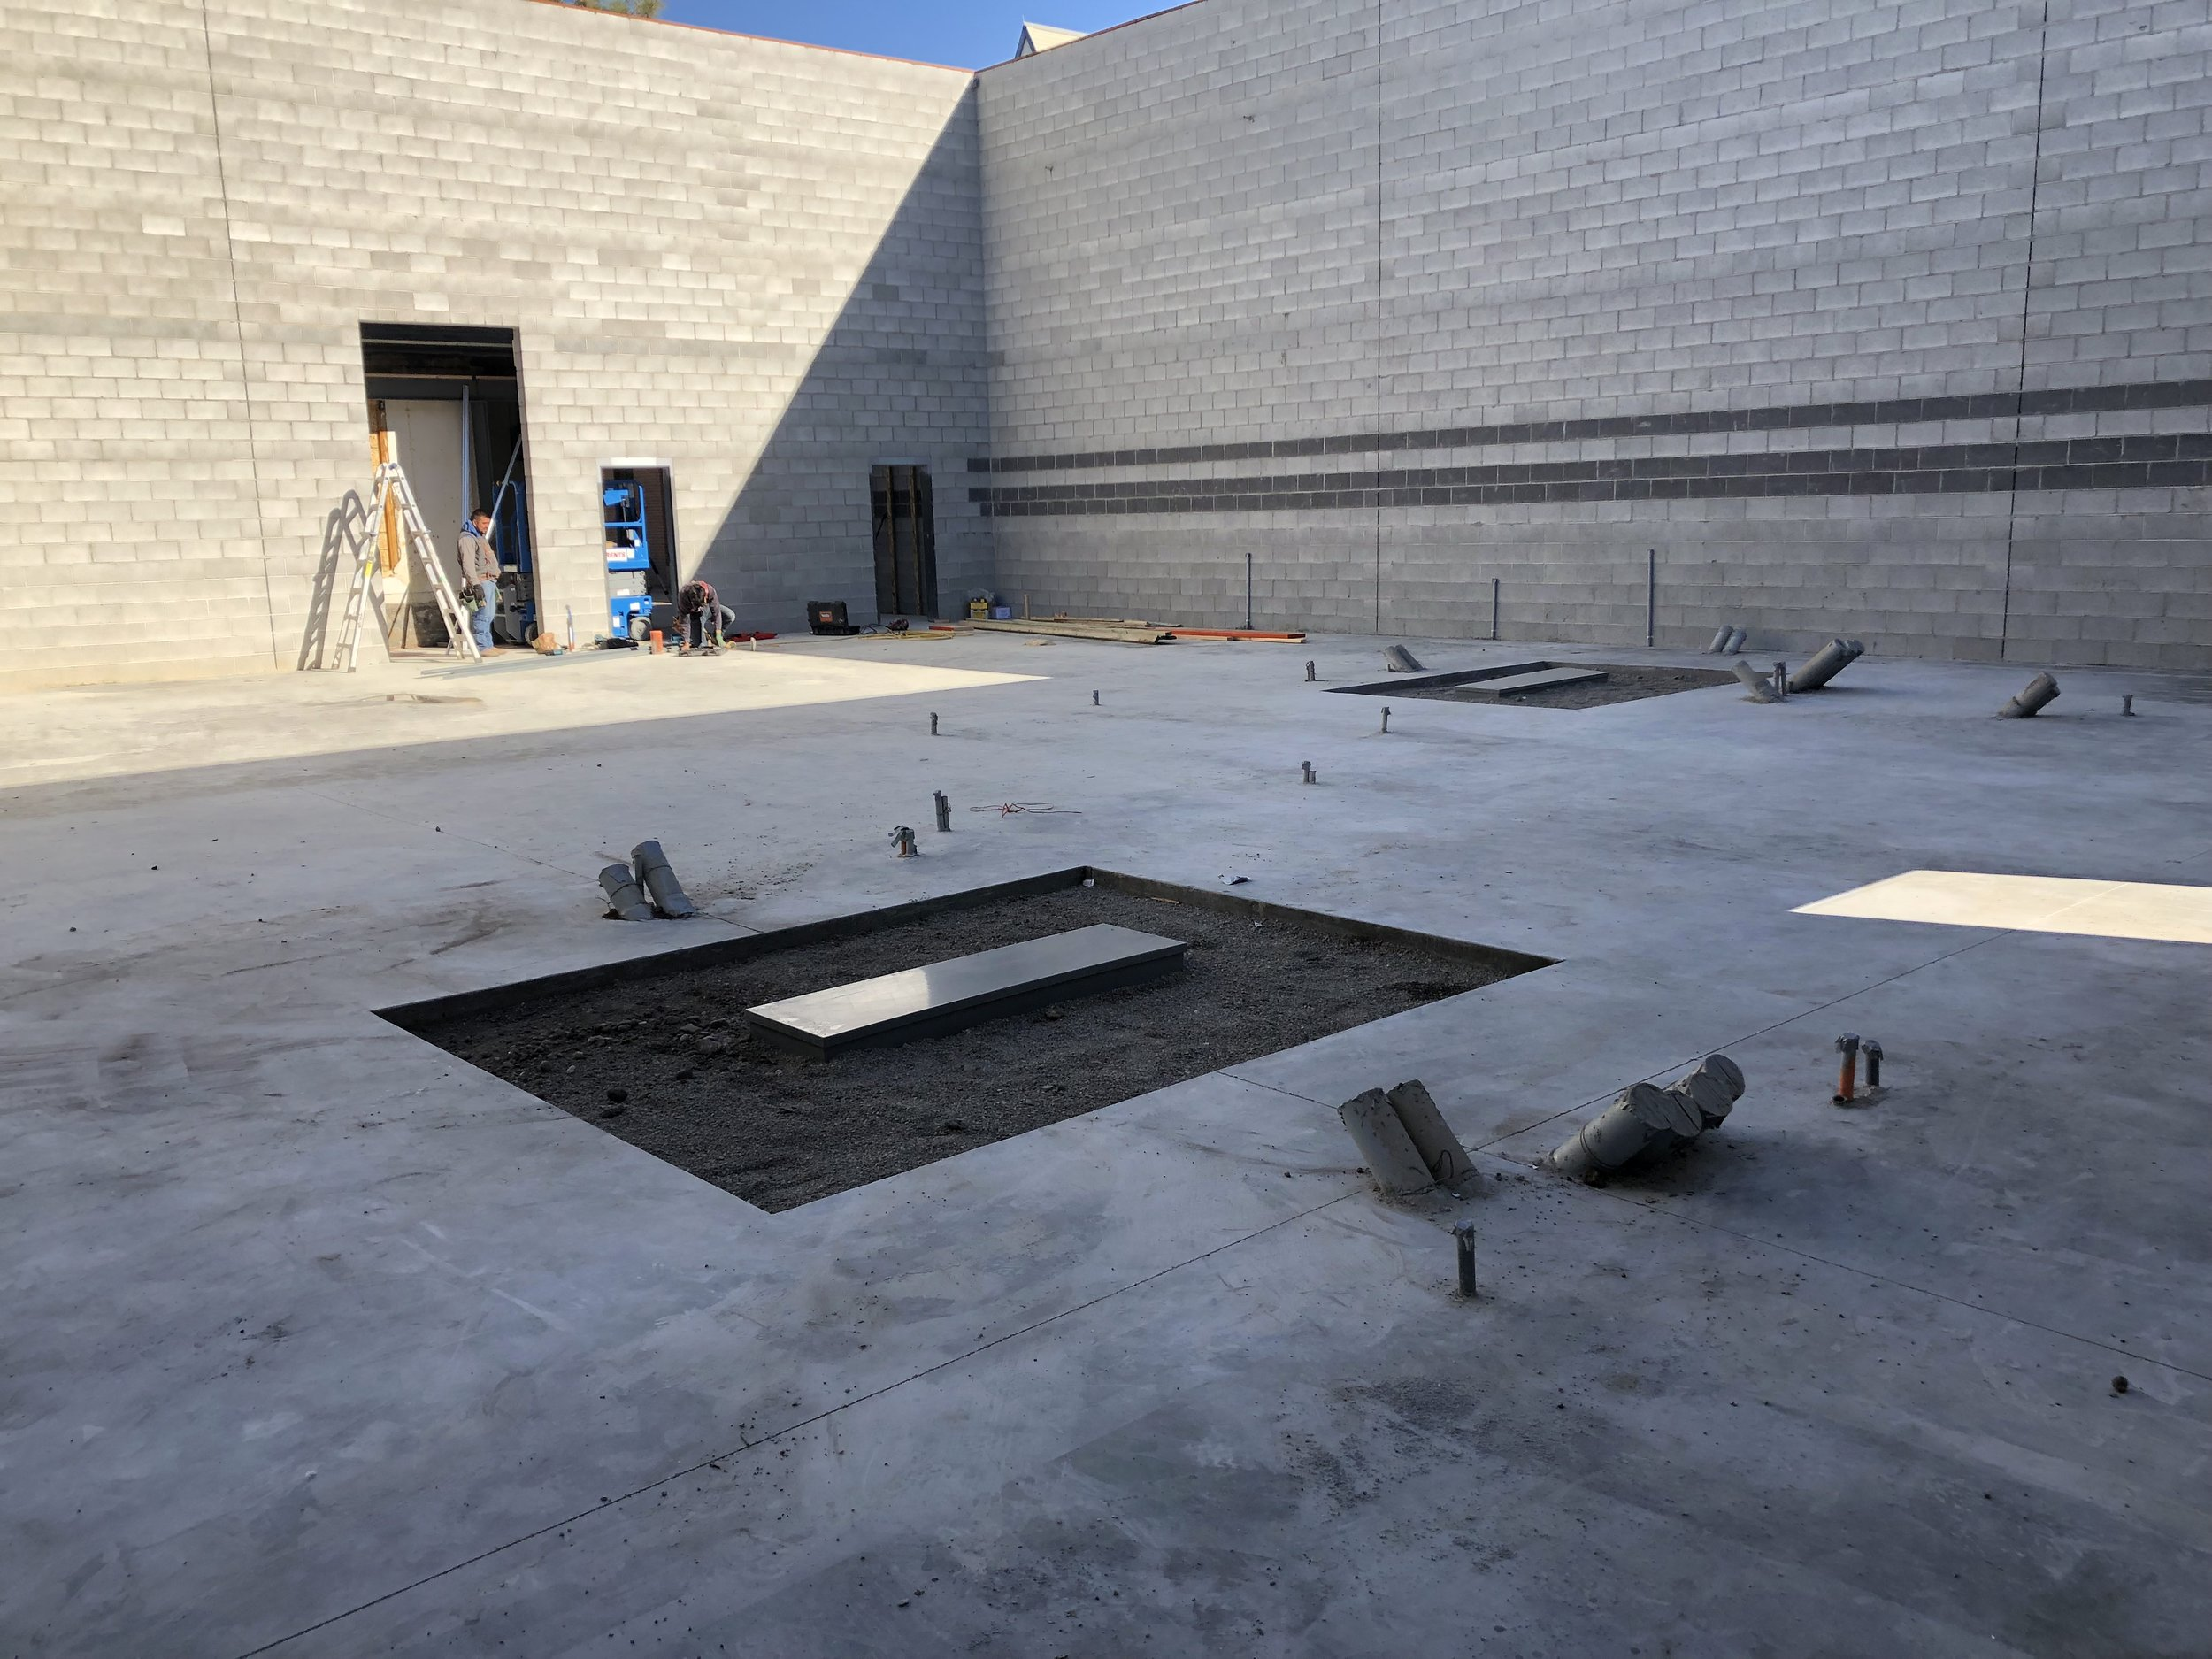 The boxes and gravel ready for the final slab pour. Not sure if they will do that soon or wait for a roof to be on the building so they can keep the concrete a bit warmer.